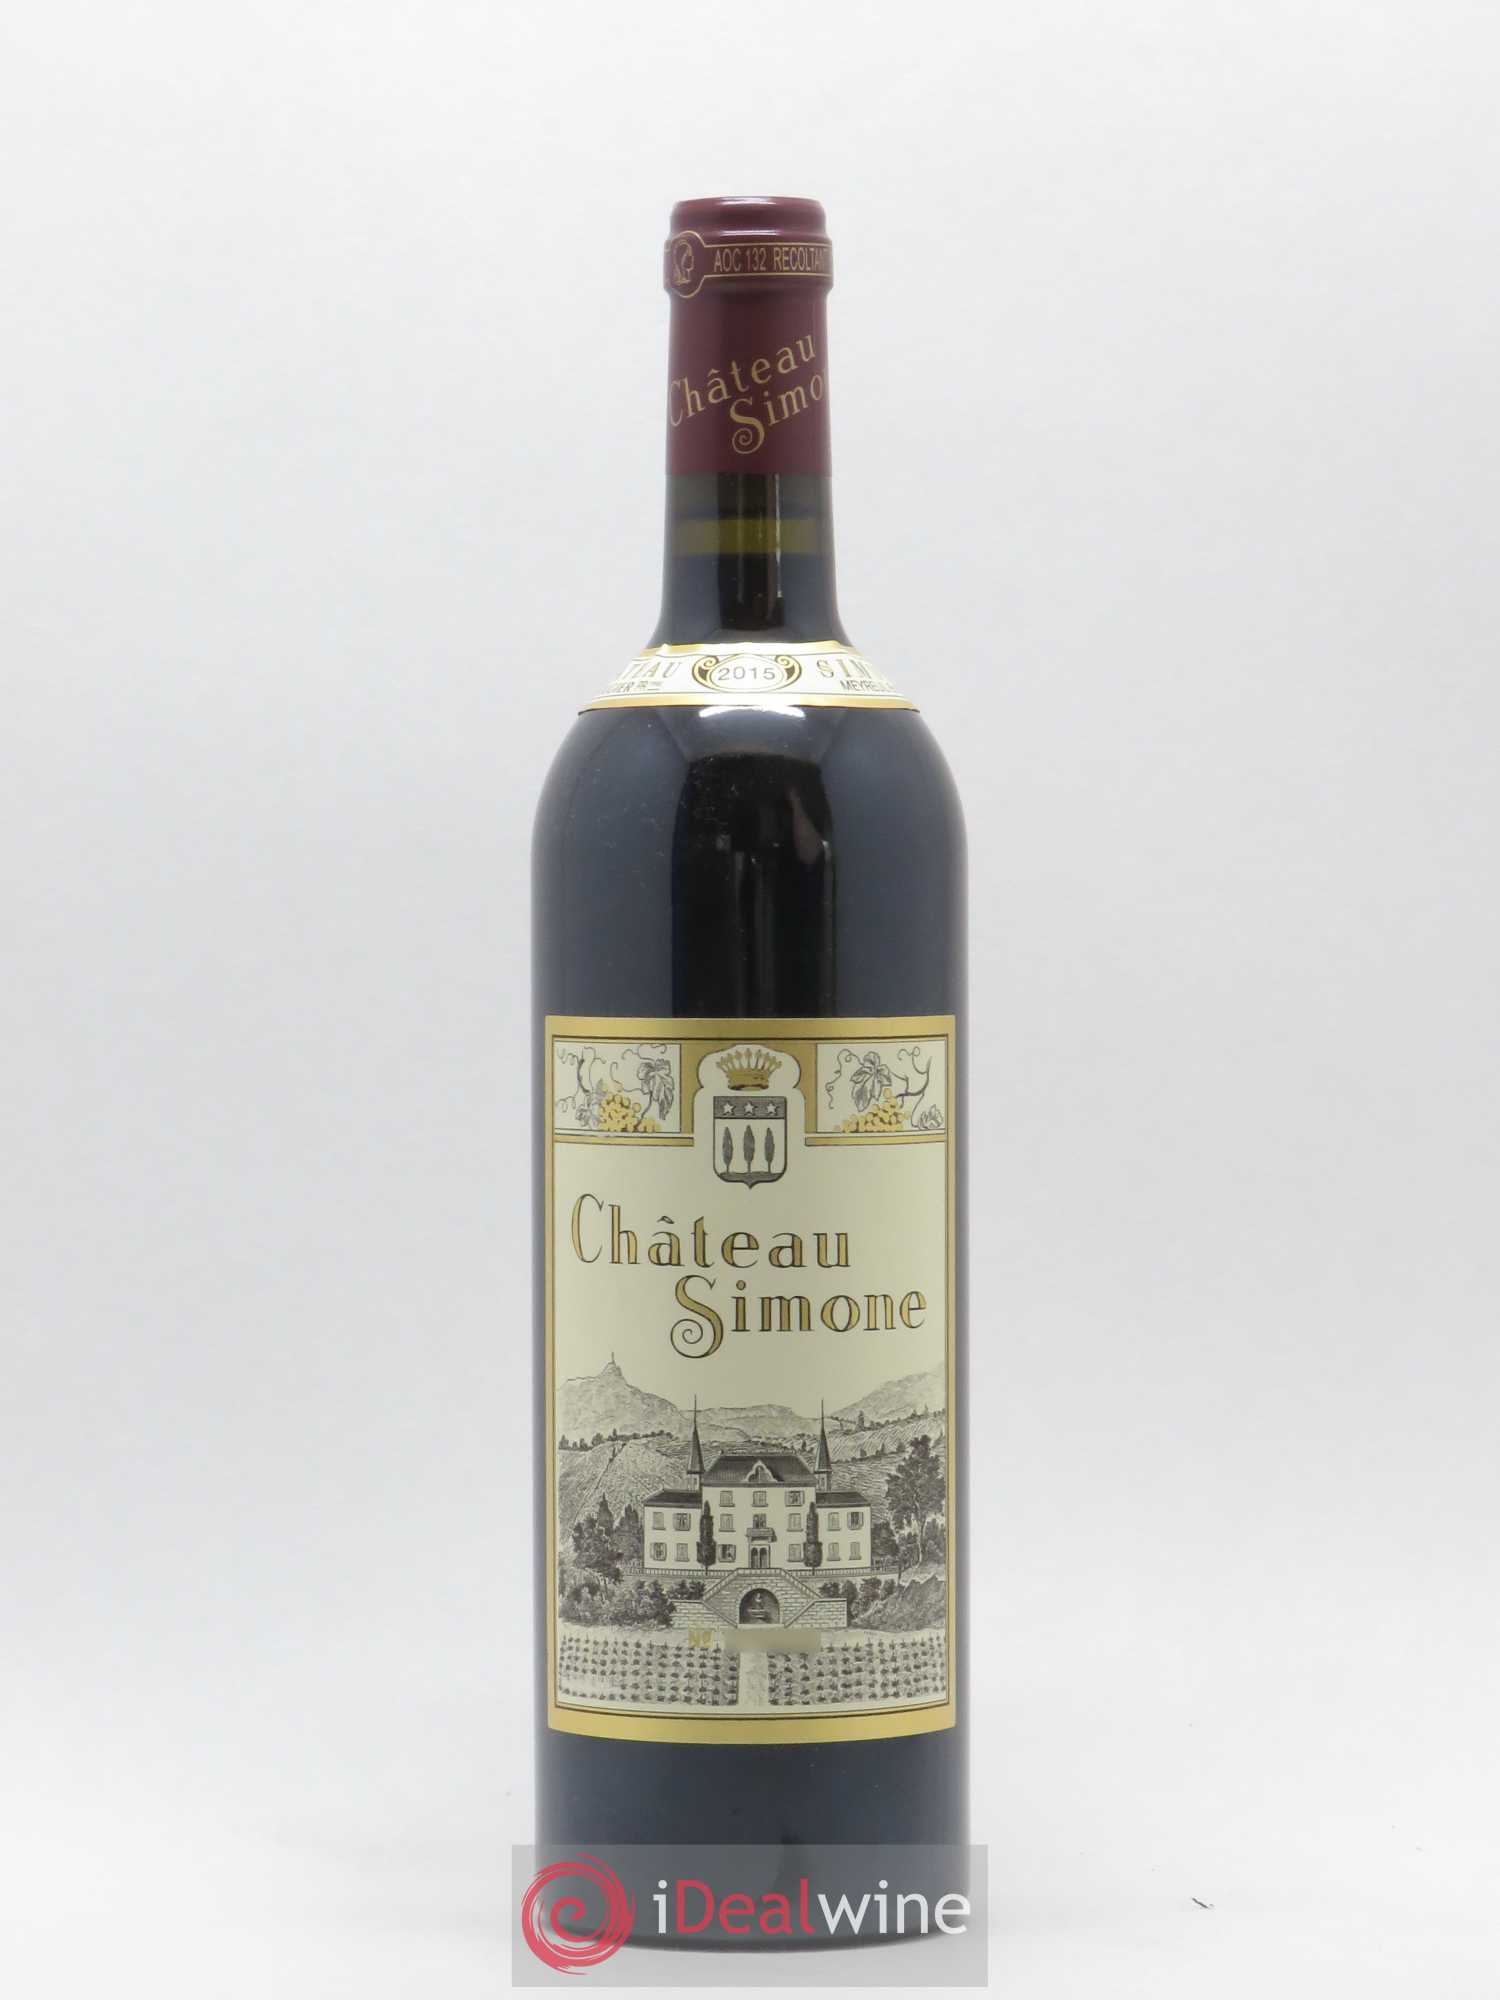 Palette Château Simone Famille Rougier  2015 - Lot of 1 Bottle